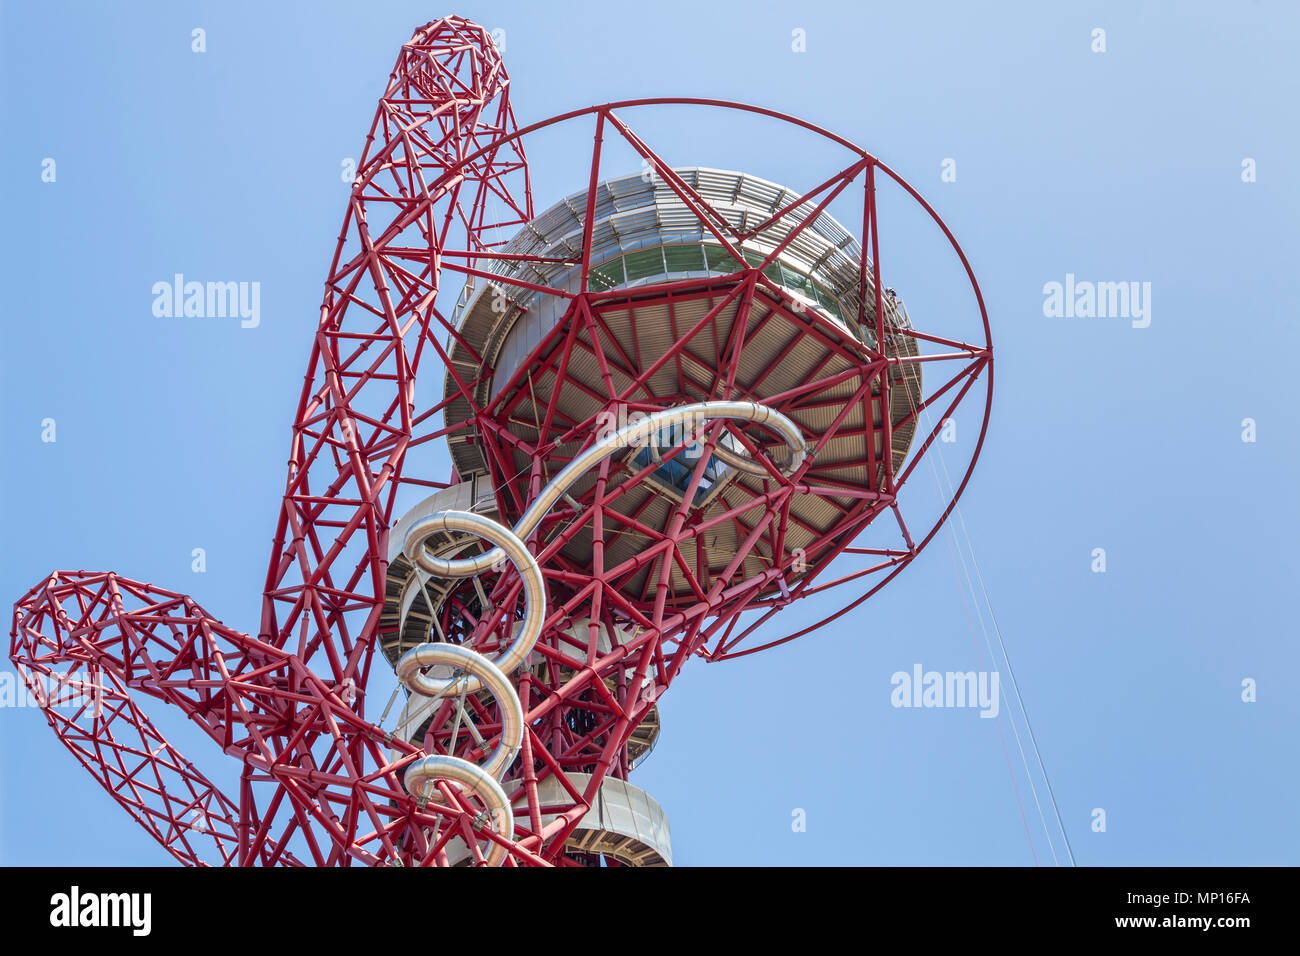 Arcelormittal Orbit sculpture, with the tallest and longest tunnel slide at the Queen Elizabeth Olympic park in London - Stock Image